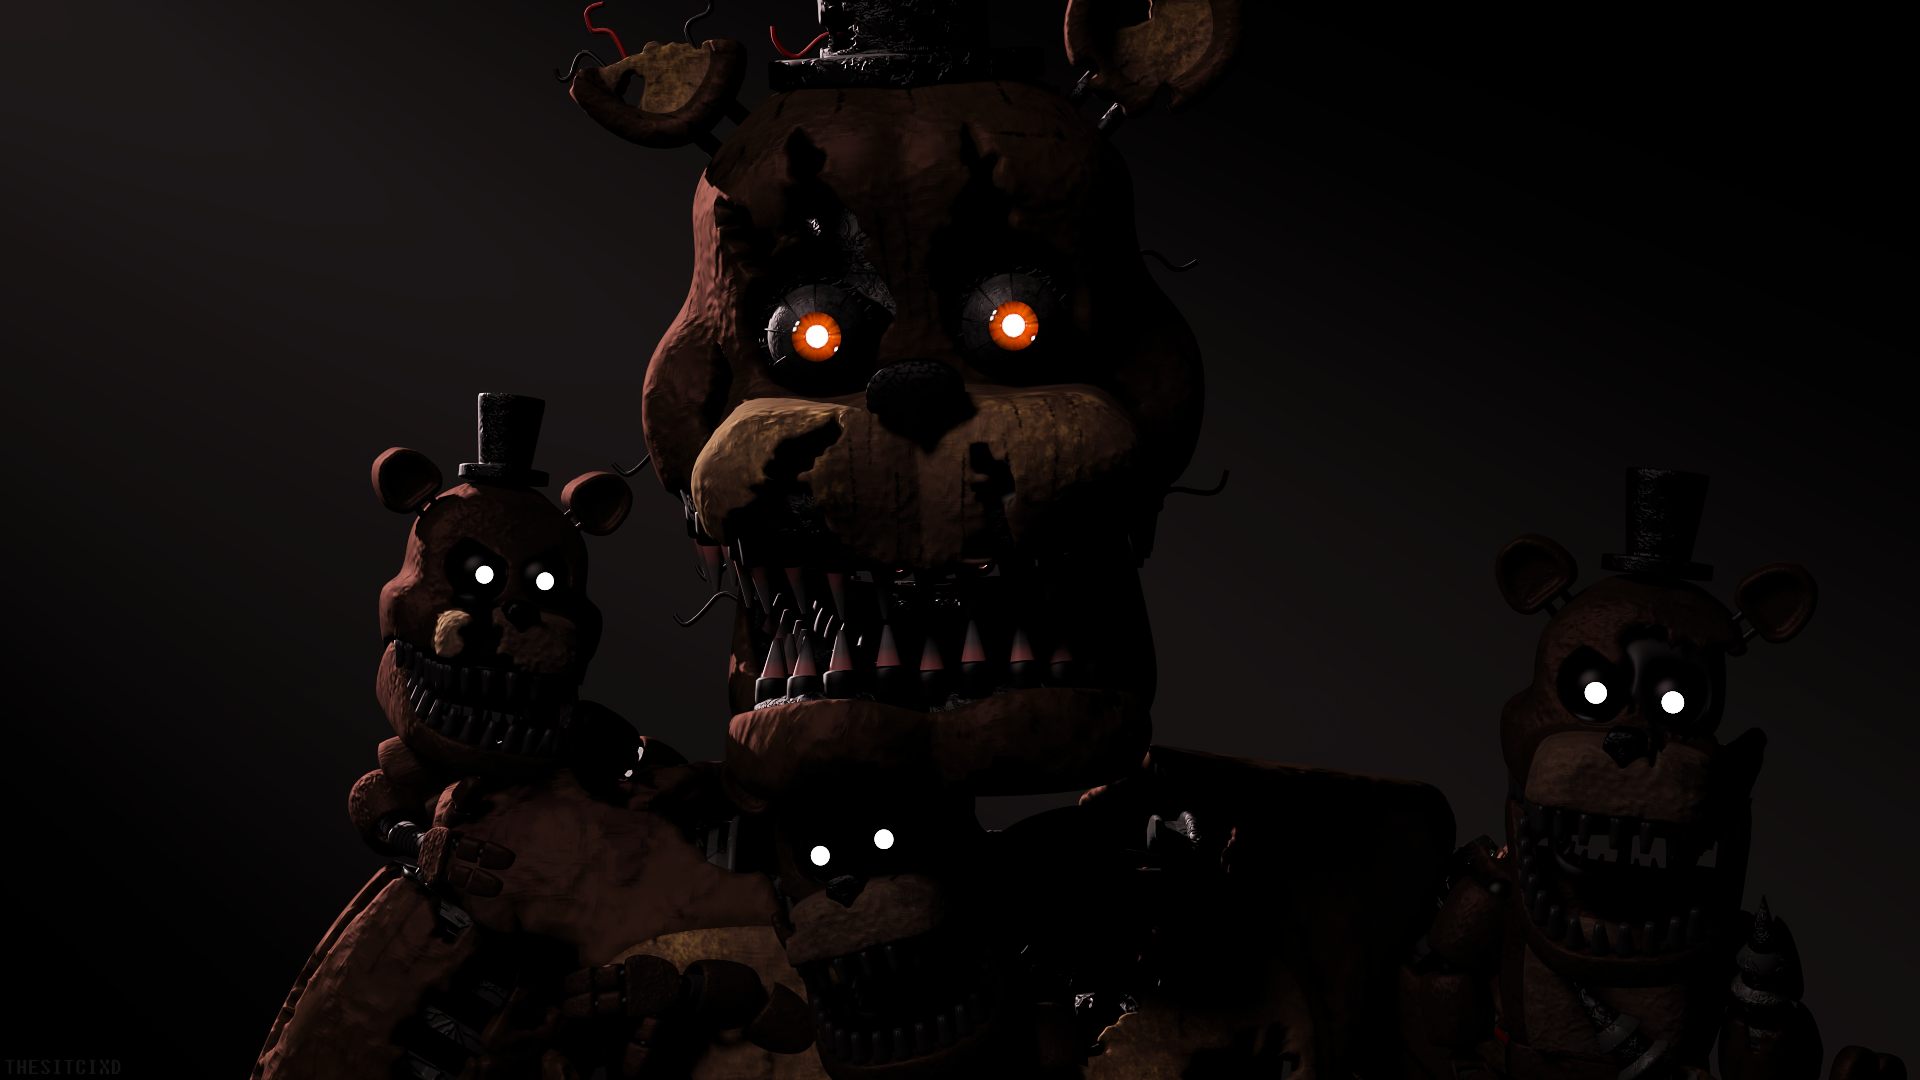 Five Nights At Freddy S 4 Hd Wallpaper Background Image